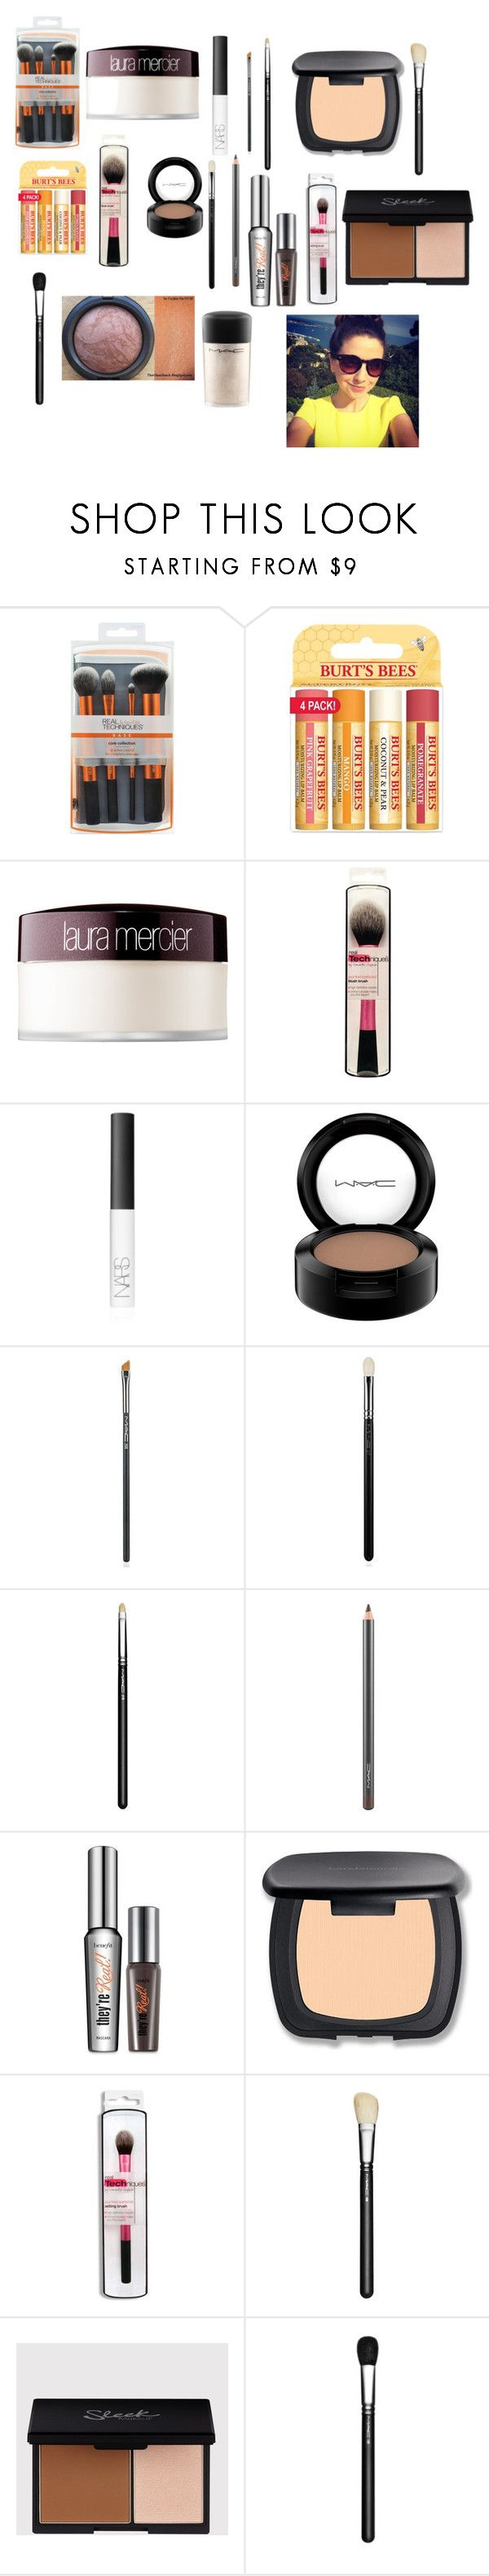 """Zoella - My Everyday Makeup Routine! #2"" by zoellaispretty on Polyvore featuring beauty, Burt's Bees, Laura Mercier, NARS Cosmetics, MAC Cosmetics, Benefit and Bare Escentuals"